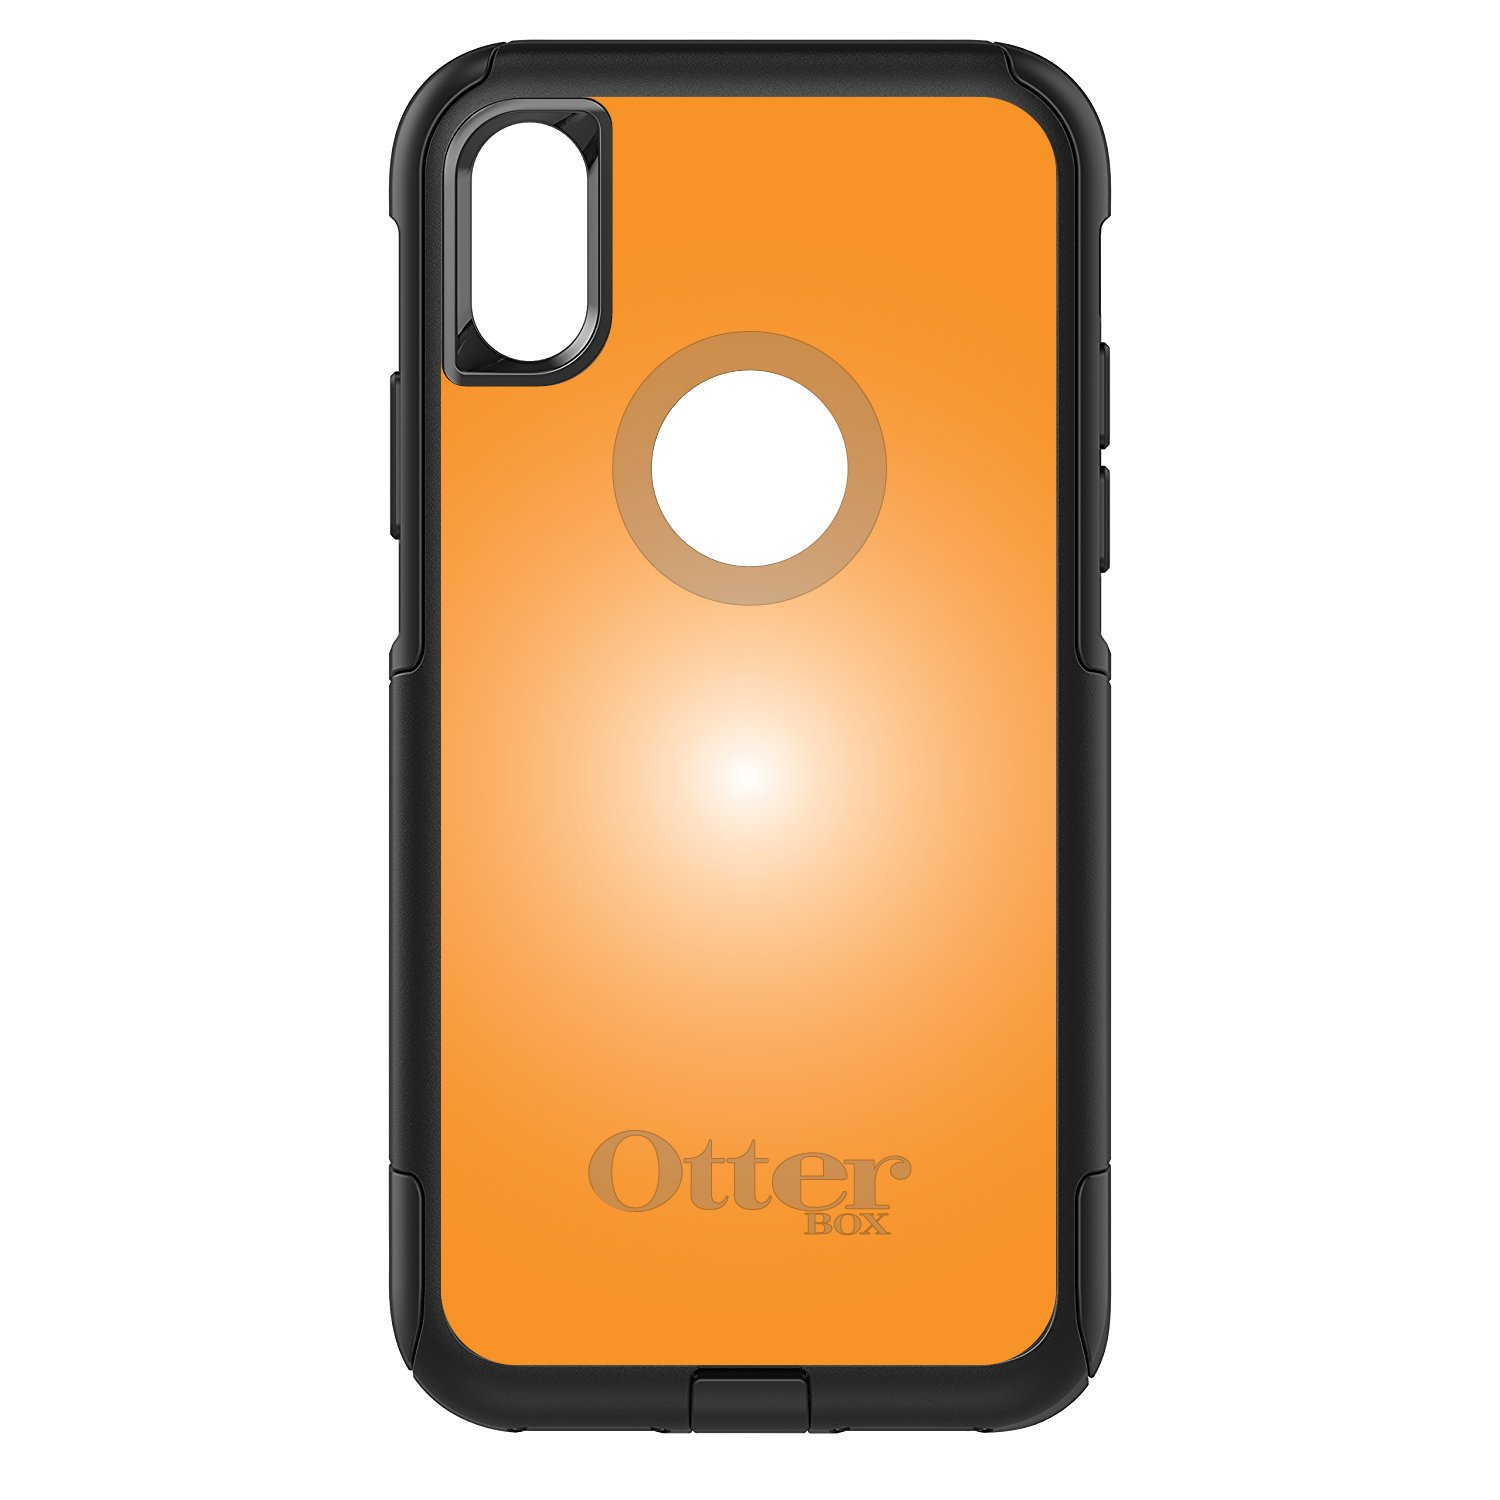 42607d2483f335 Amazon.com  DistinctInk Case for iPhone XR (6.1